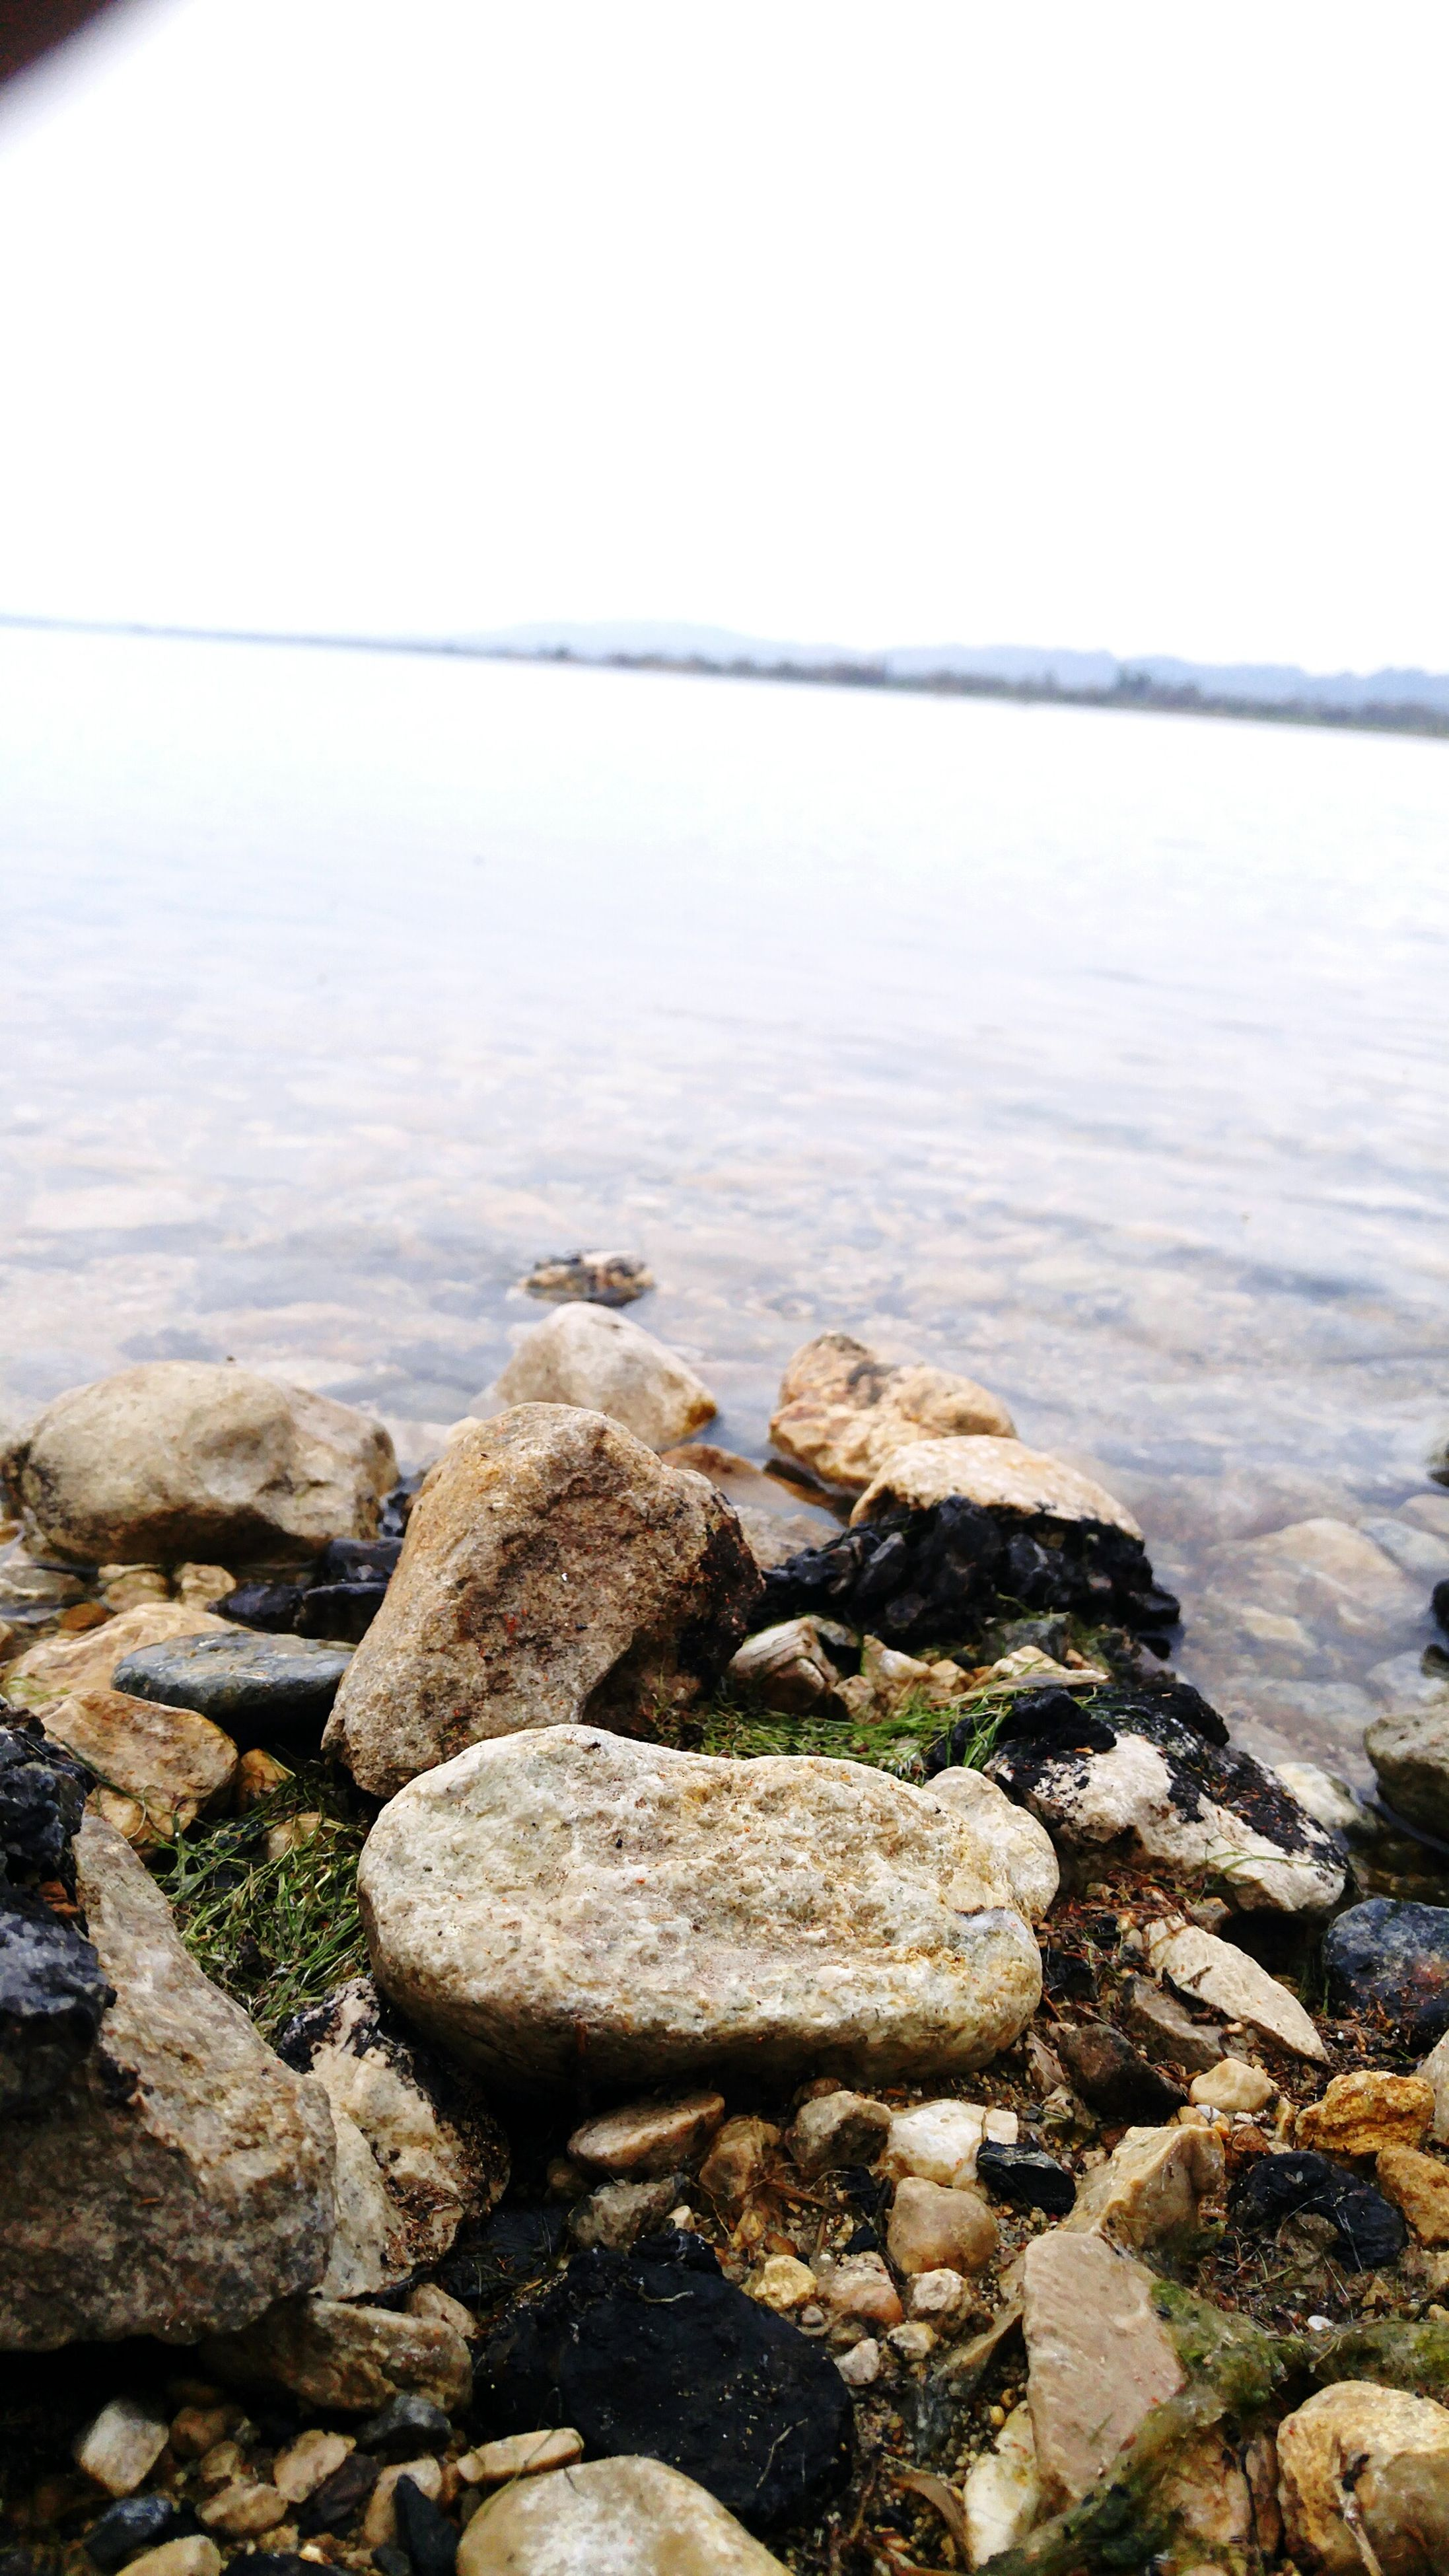 water, rock - object, sea, nature, tranquil scene, tranquility, scenics, outdoors, beauty in nature, no people, day, pebble, beach, close-up, clear sky, sky, pebble beach